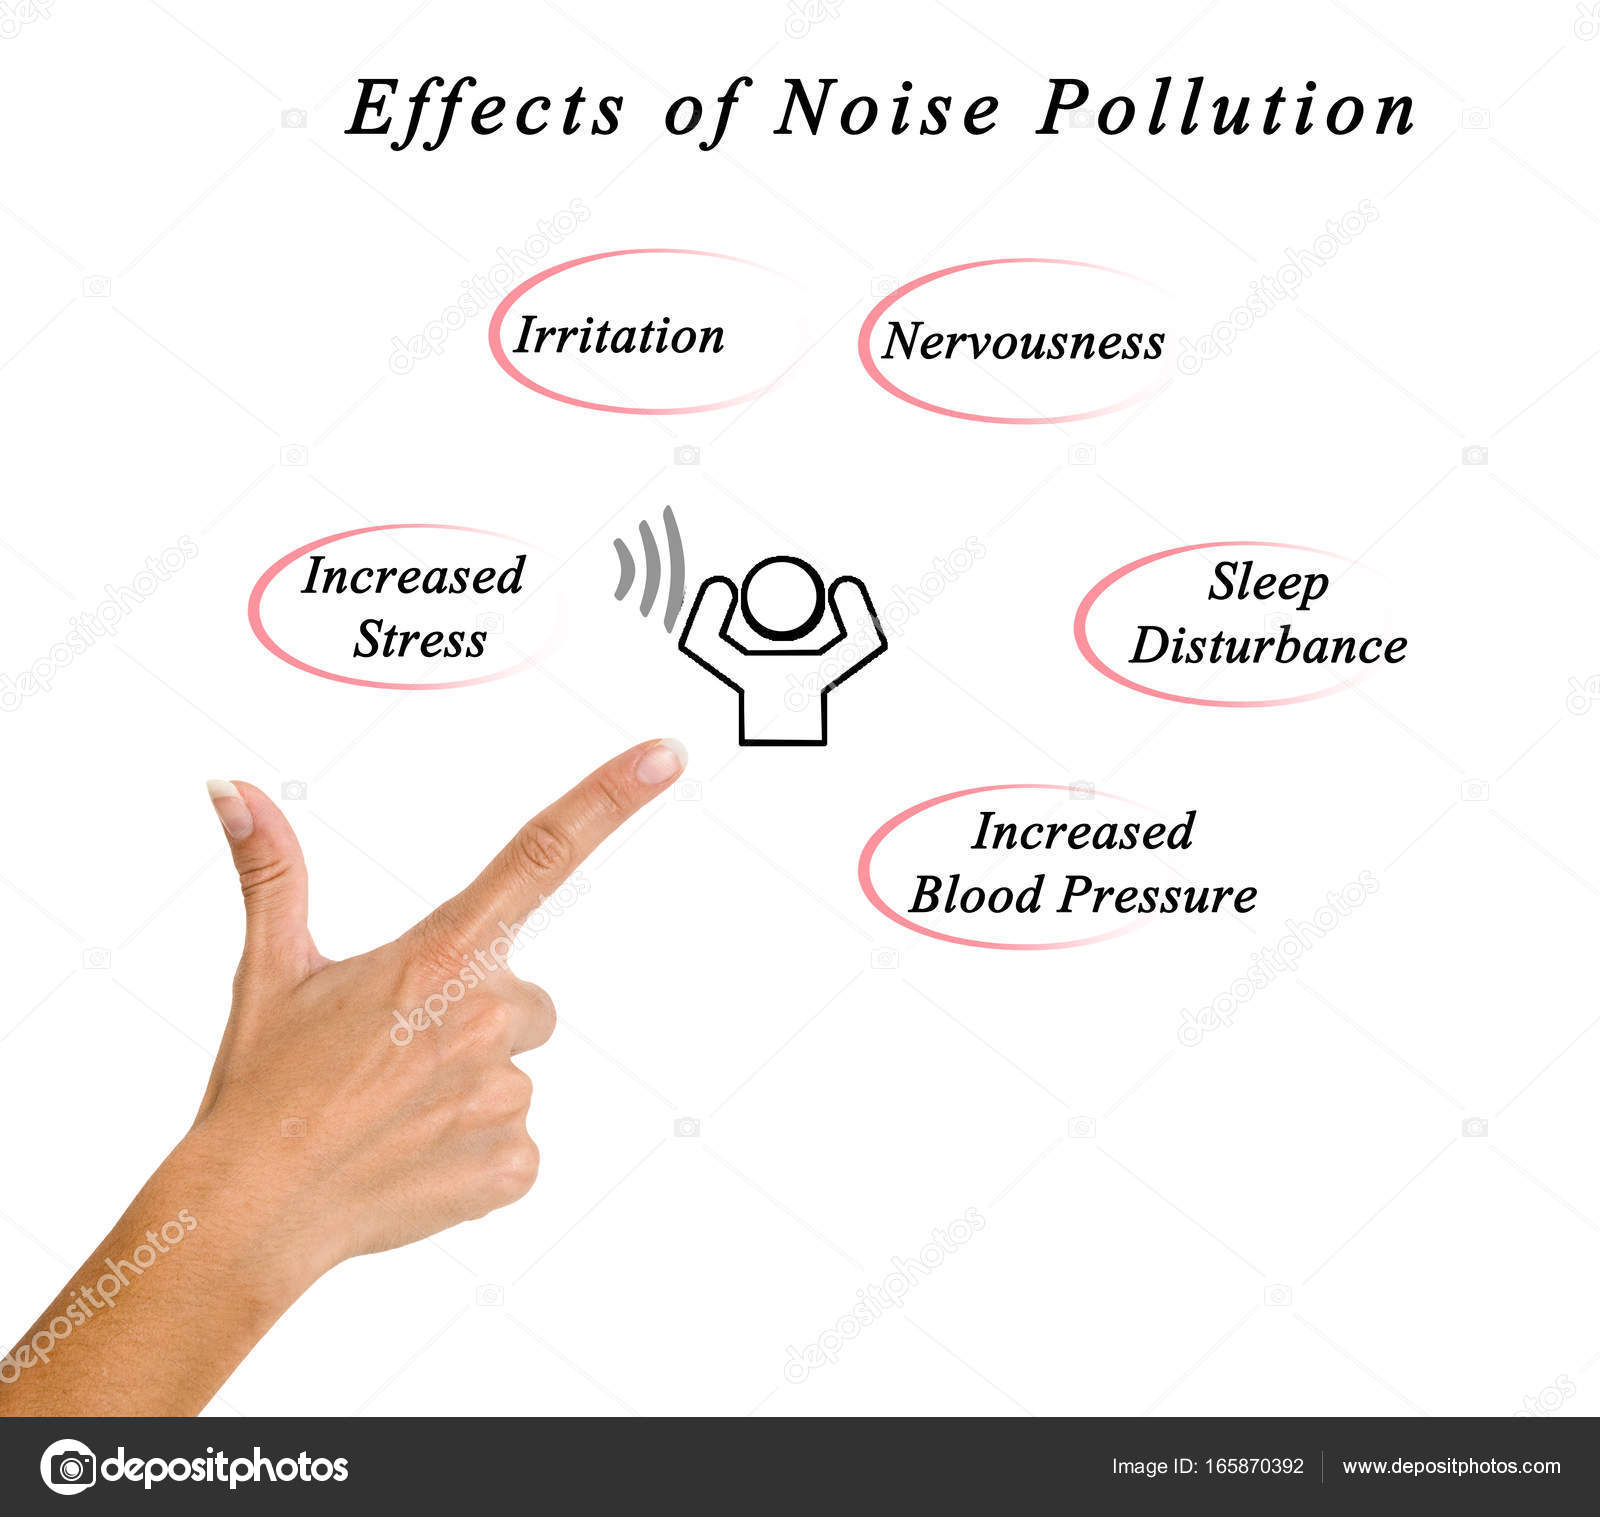 the effects of noise on a Noise has many negative effects especially at the workplace and in particular between fleming and simmons fleming being disturbed by the noise will continue making poor decisions even more so because she is in a senior position she will make a decision that will trickle down and poor decisions.